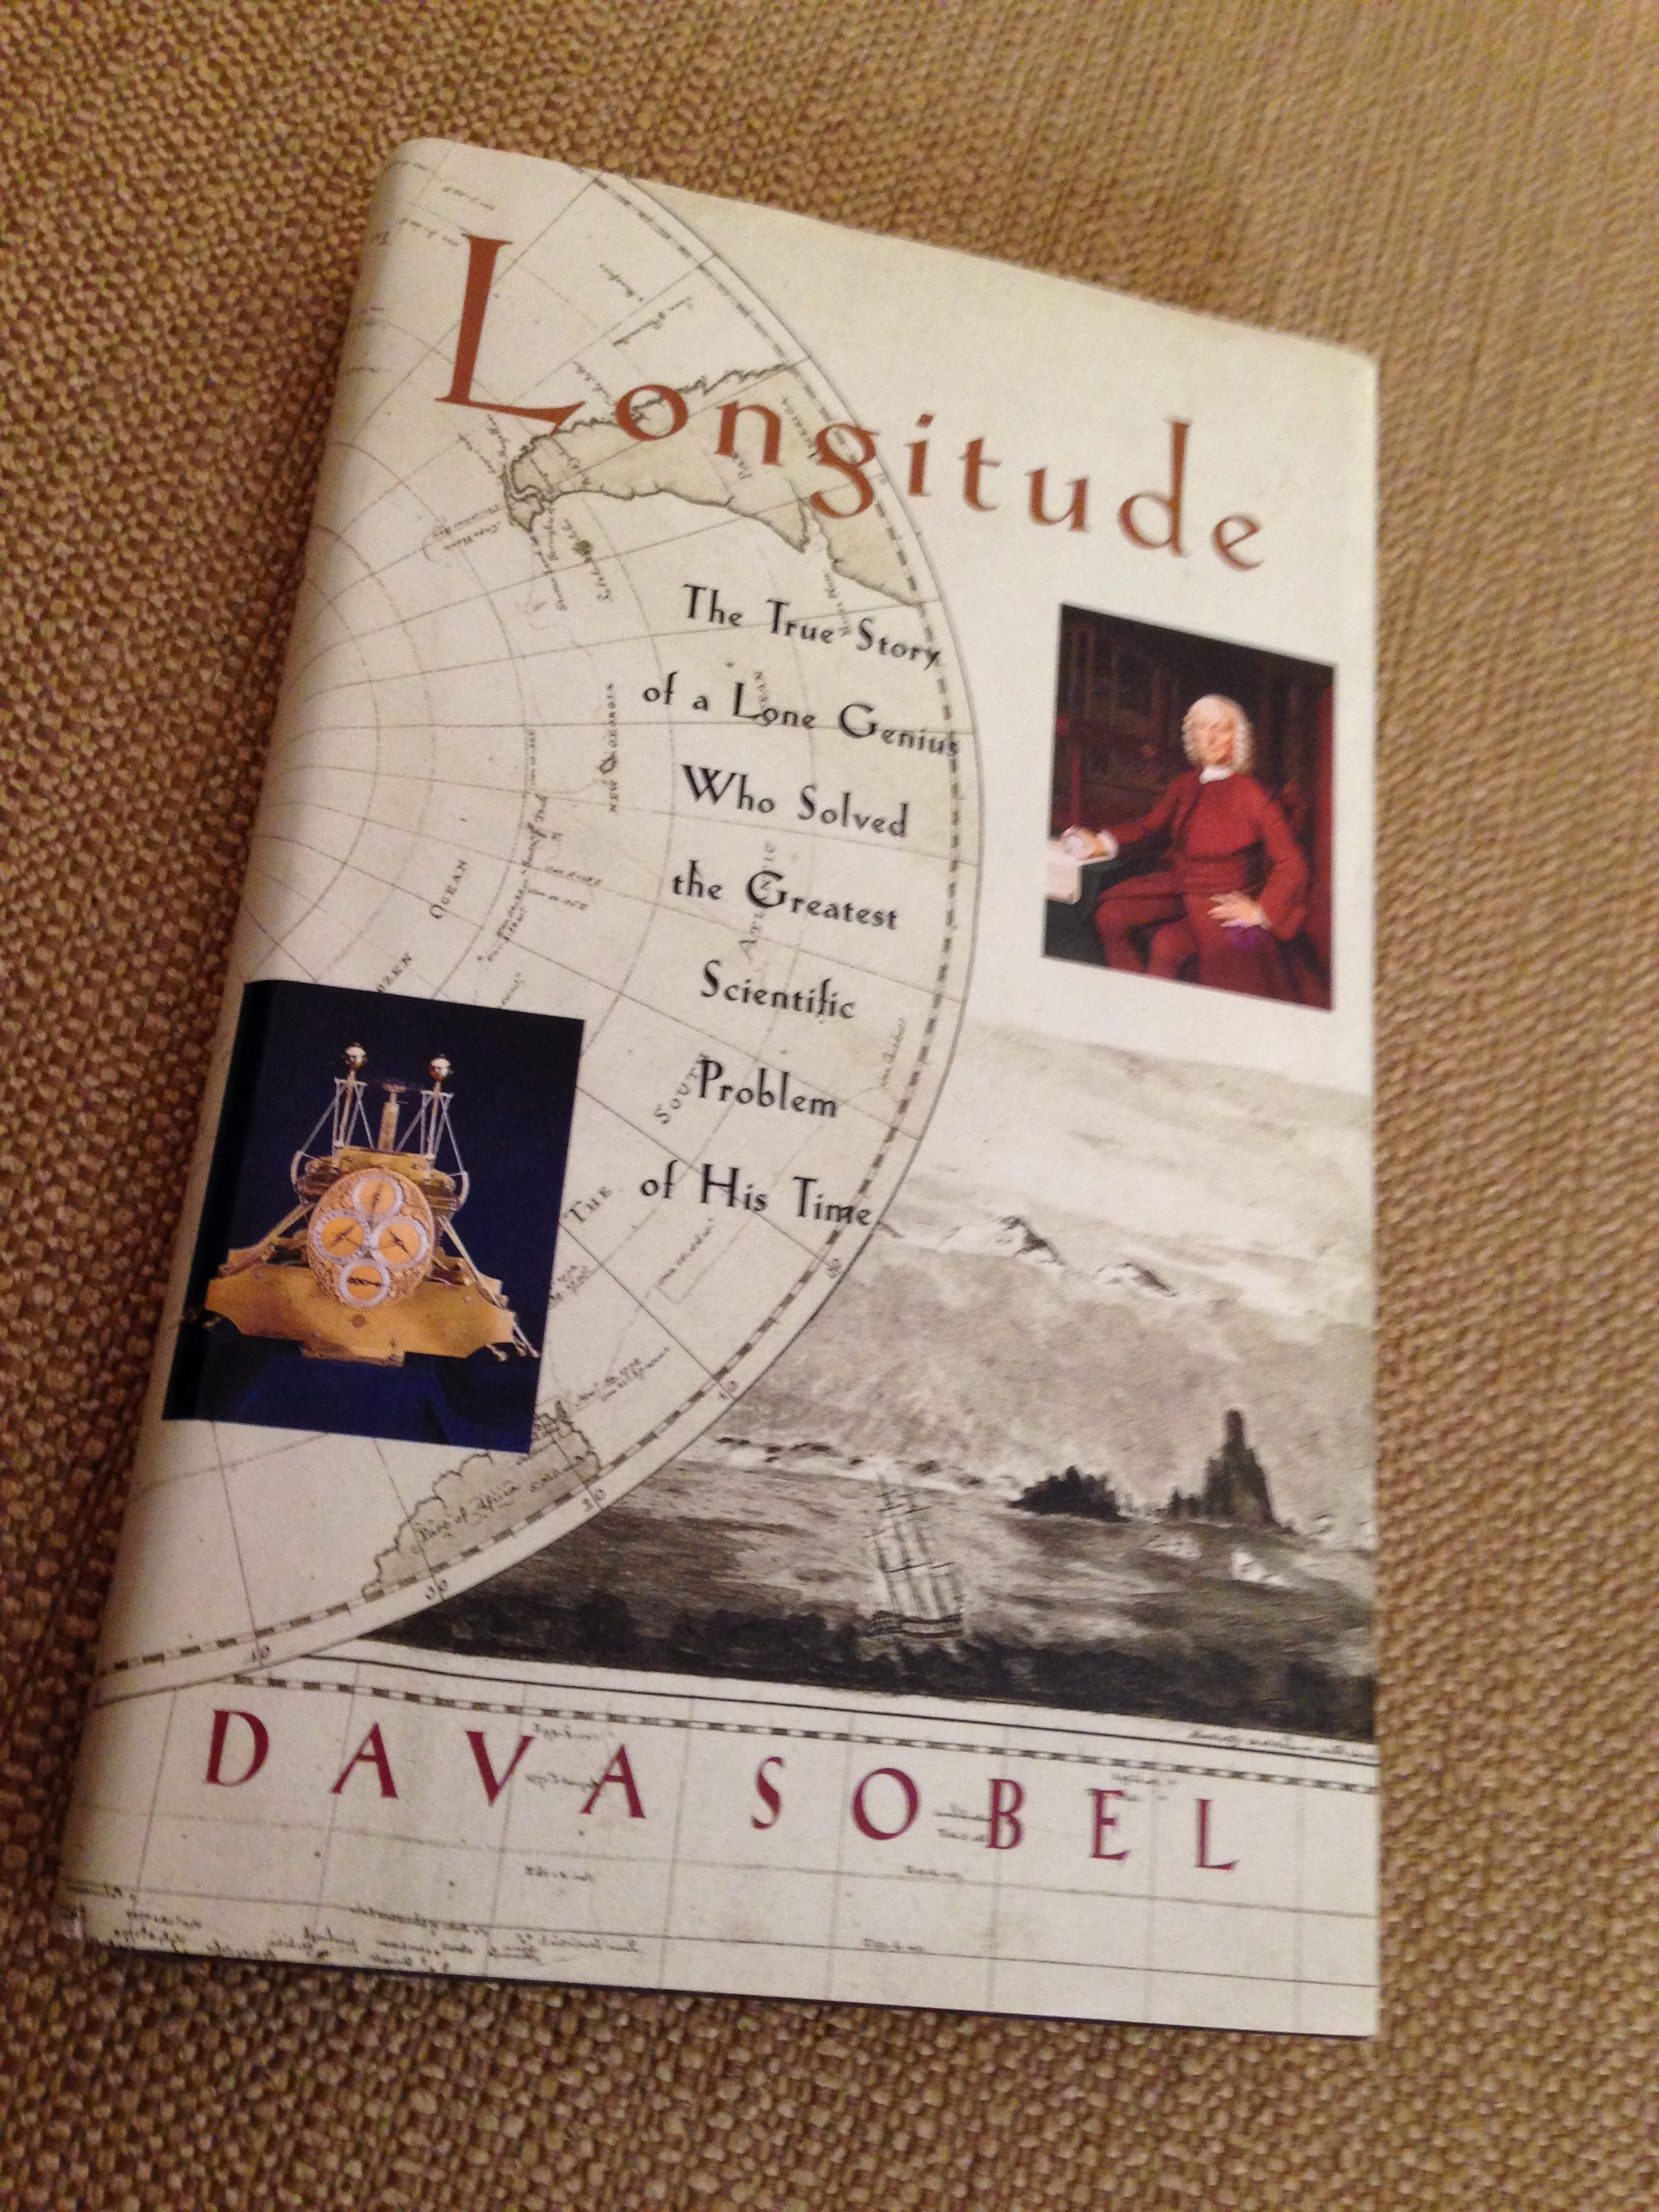 longitude dava sobel Buy longitude: the true story of a lone genius who solved the greatest scientific problem of his time 10th anniversary ed by dava sobel (isbn: 8601410024017) from amazon's book store.